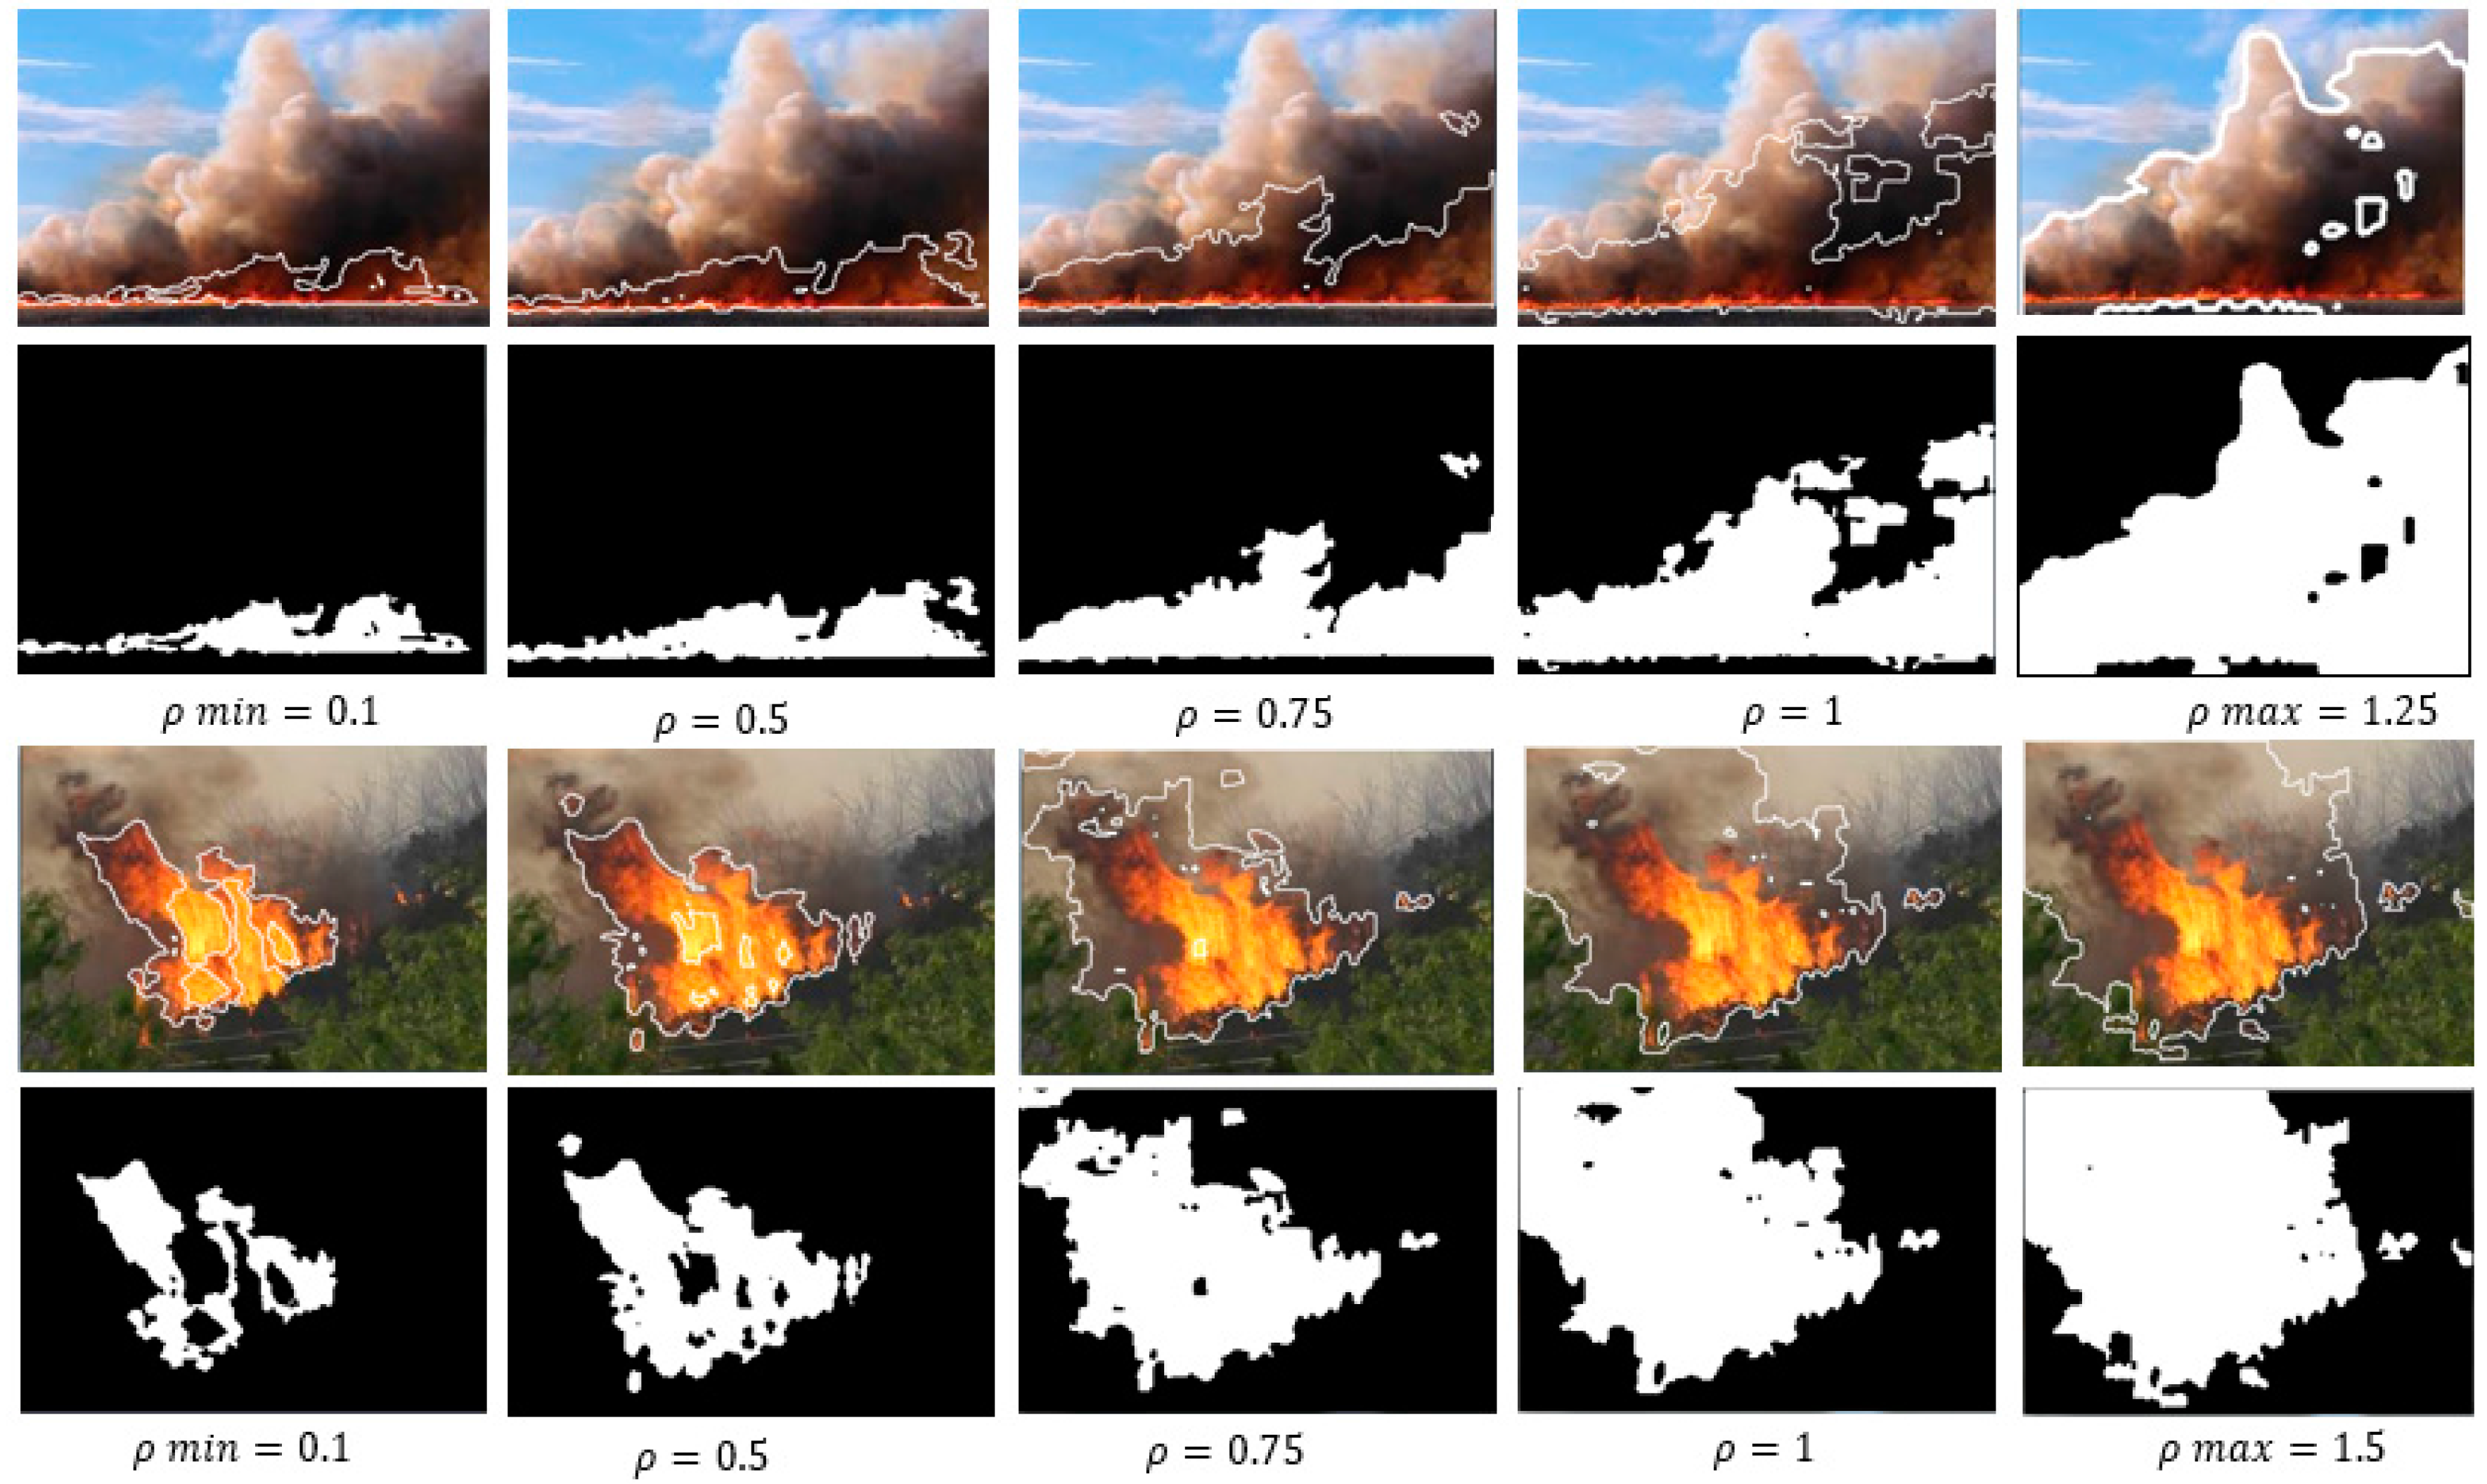 firefighting drone, AI, image-based fire detection